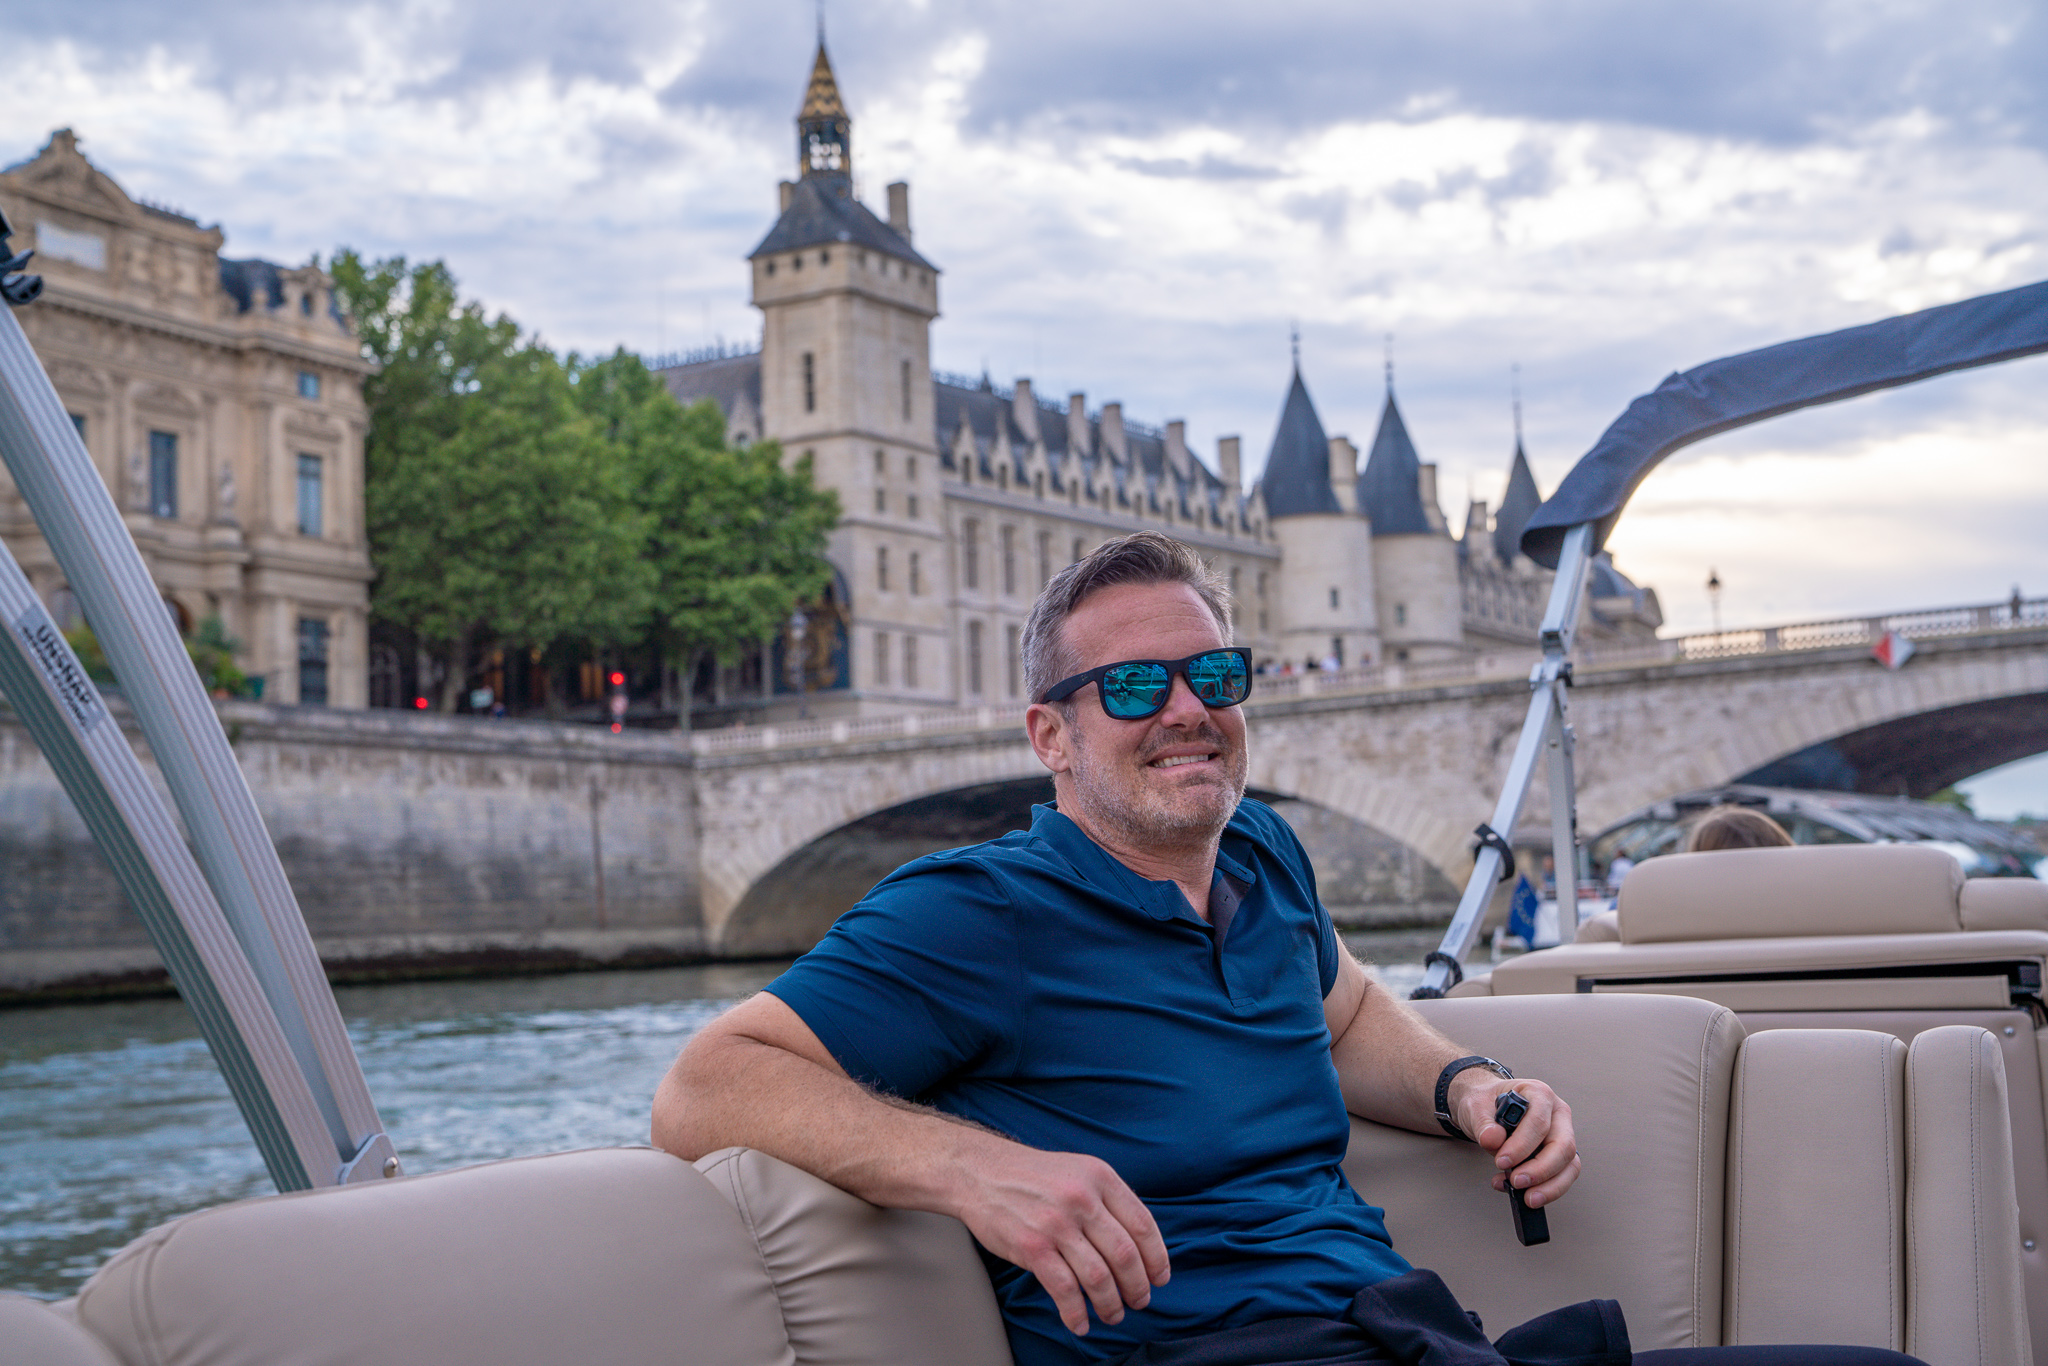 Man sitting in a private boat cruising the Seine river in Paris, France